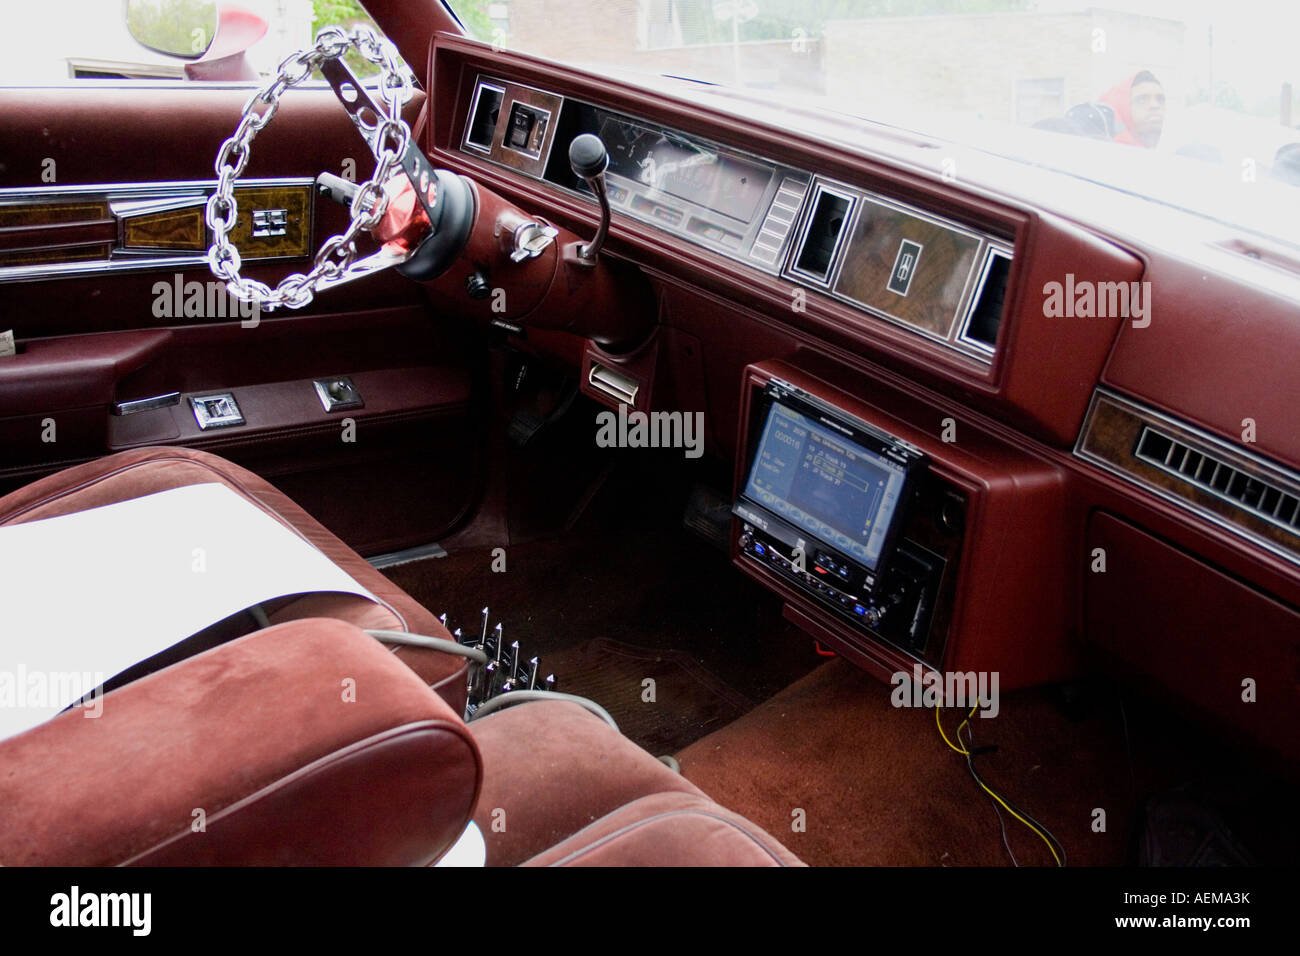 interior of oldsmobile cutlass supreme at the lowrider car show stock photo 13713990 alamy. Black Bedroom Furniture Sets. Home Design Ideas